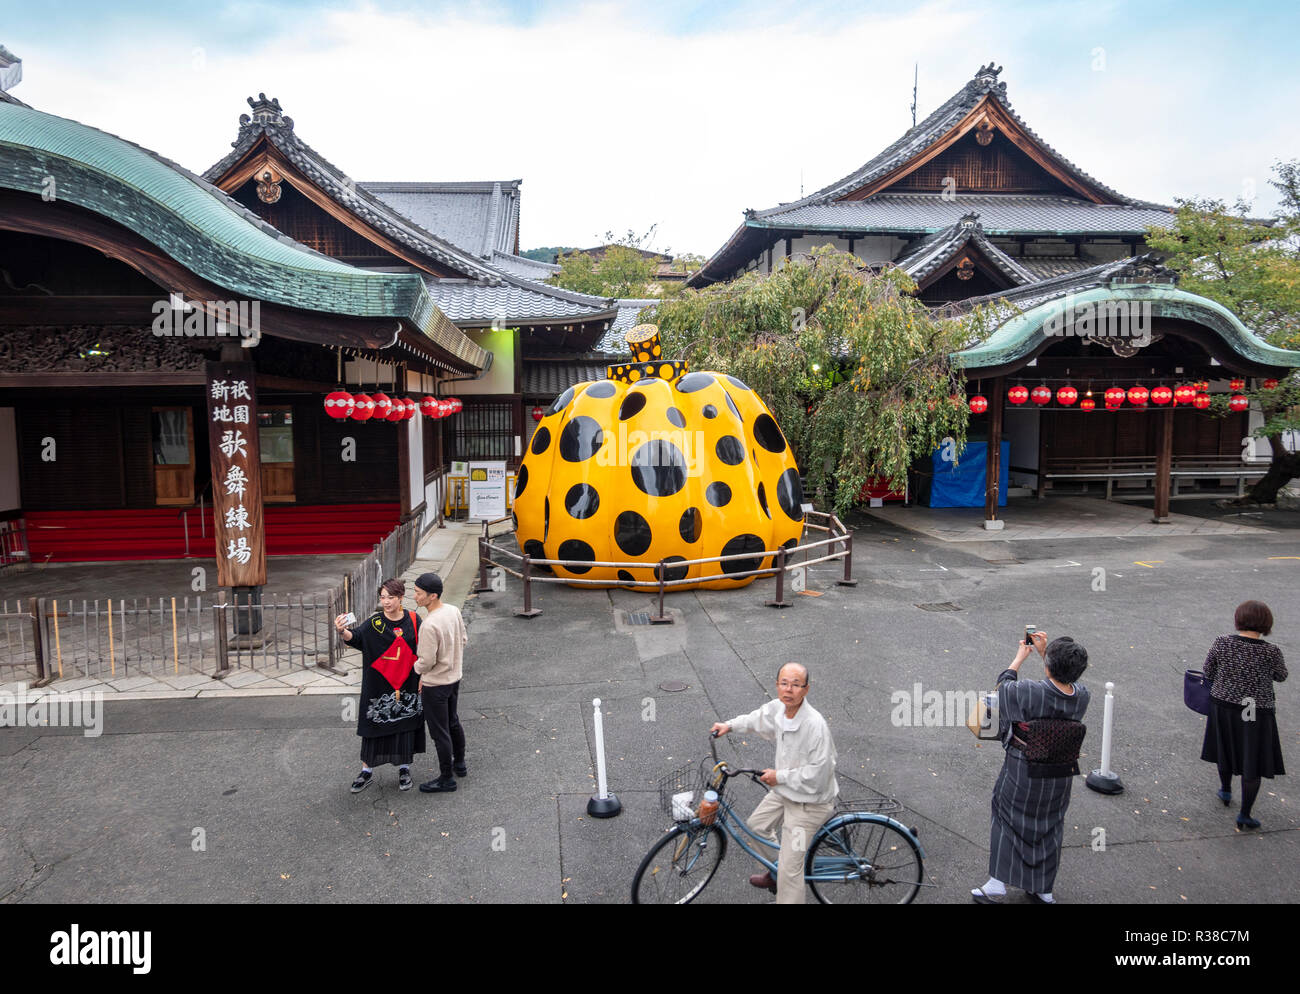 https://c7.alamy.com/comp/R38C7M/pumpkin-by-yayoi-kusama-displayed-at-the-entrance-of-the-forever-museum-of-contemporary-art-fmoca-in-gion-kyoto-R38C7M.jpg